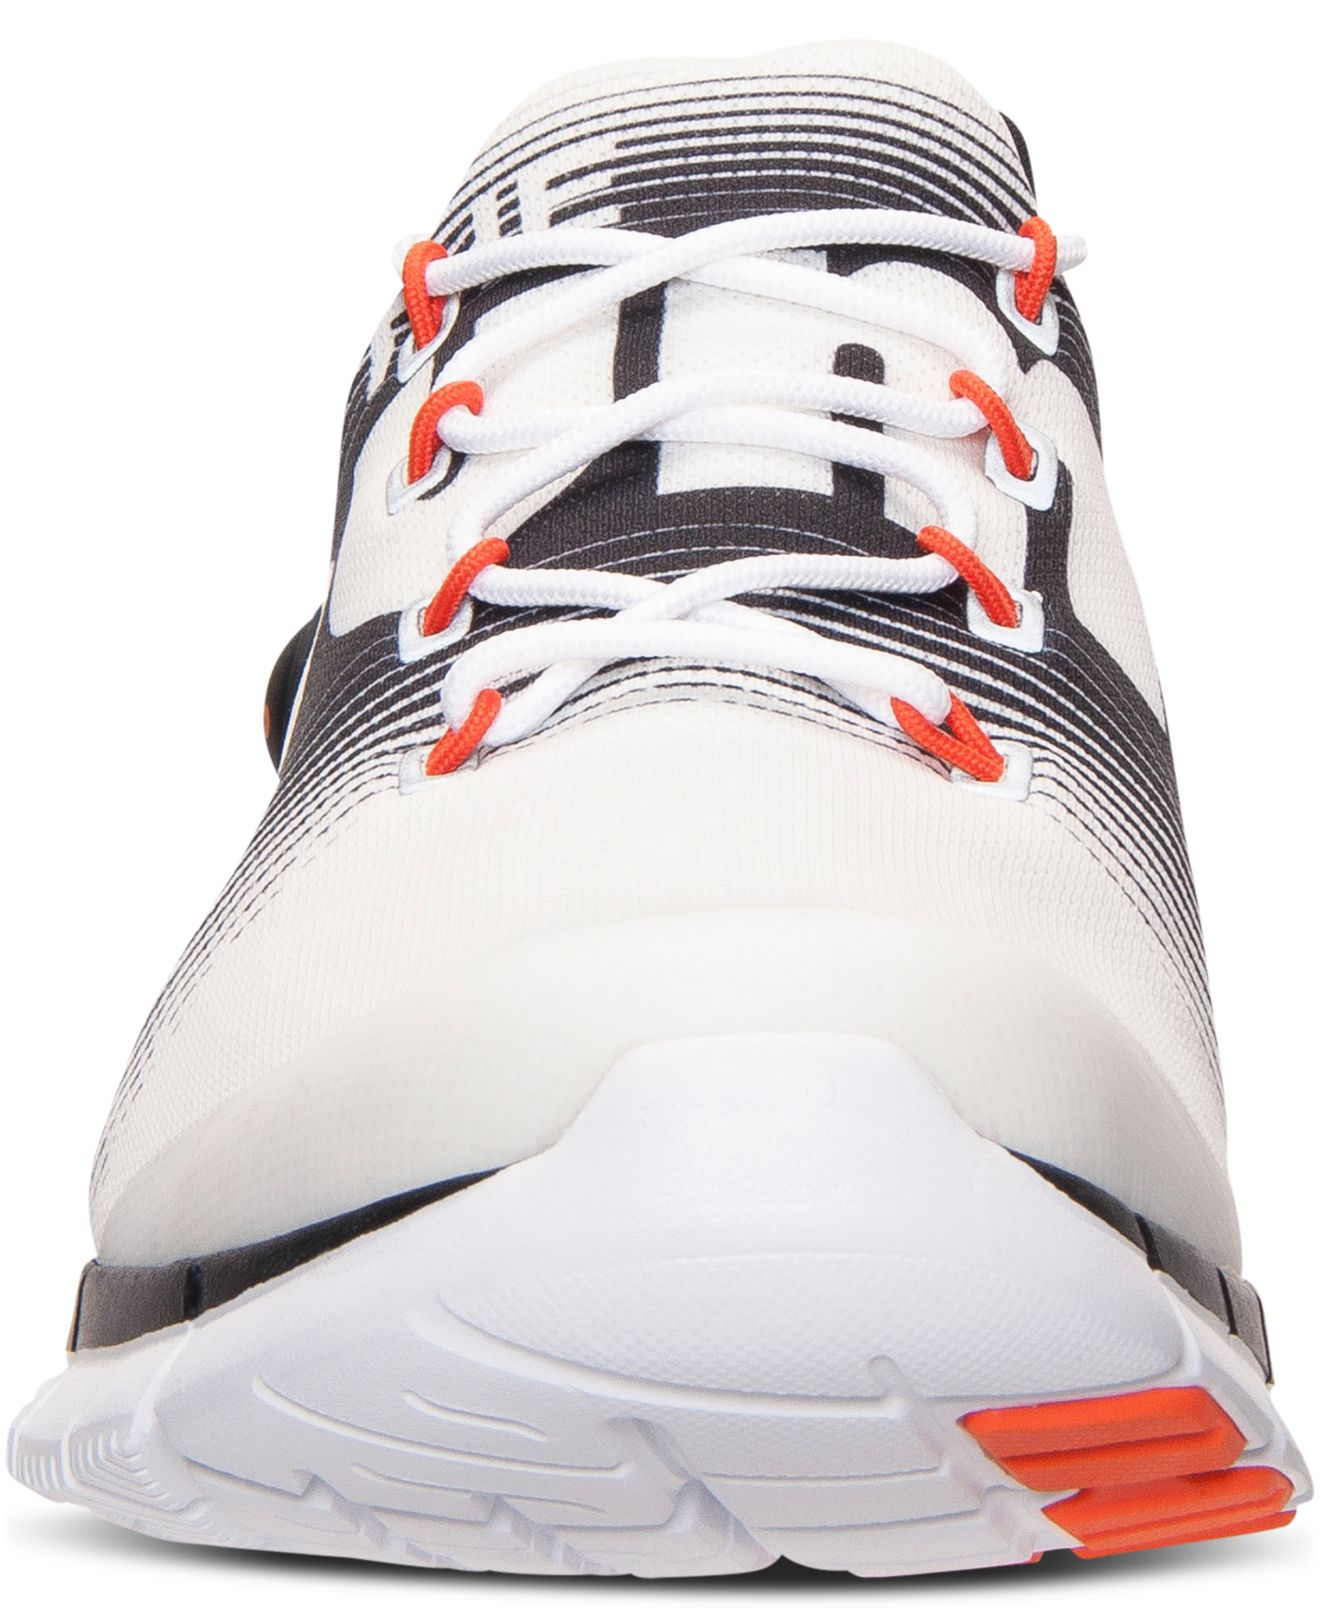 ... italy lyst reebok mens zpump fusion running sneakers from finish line  7a794 9dc1e 40e3abbbb